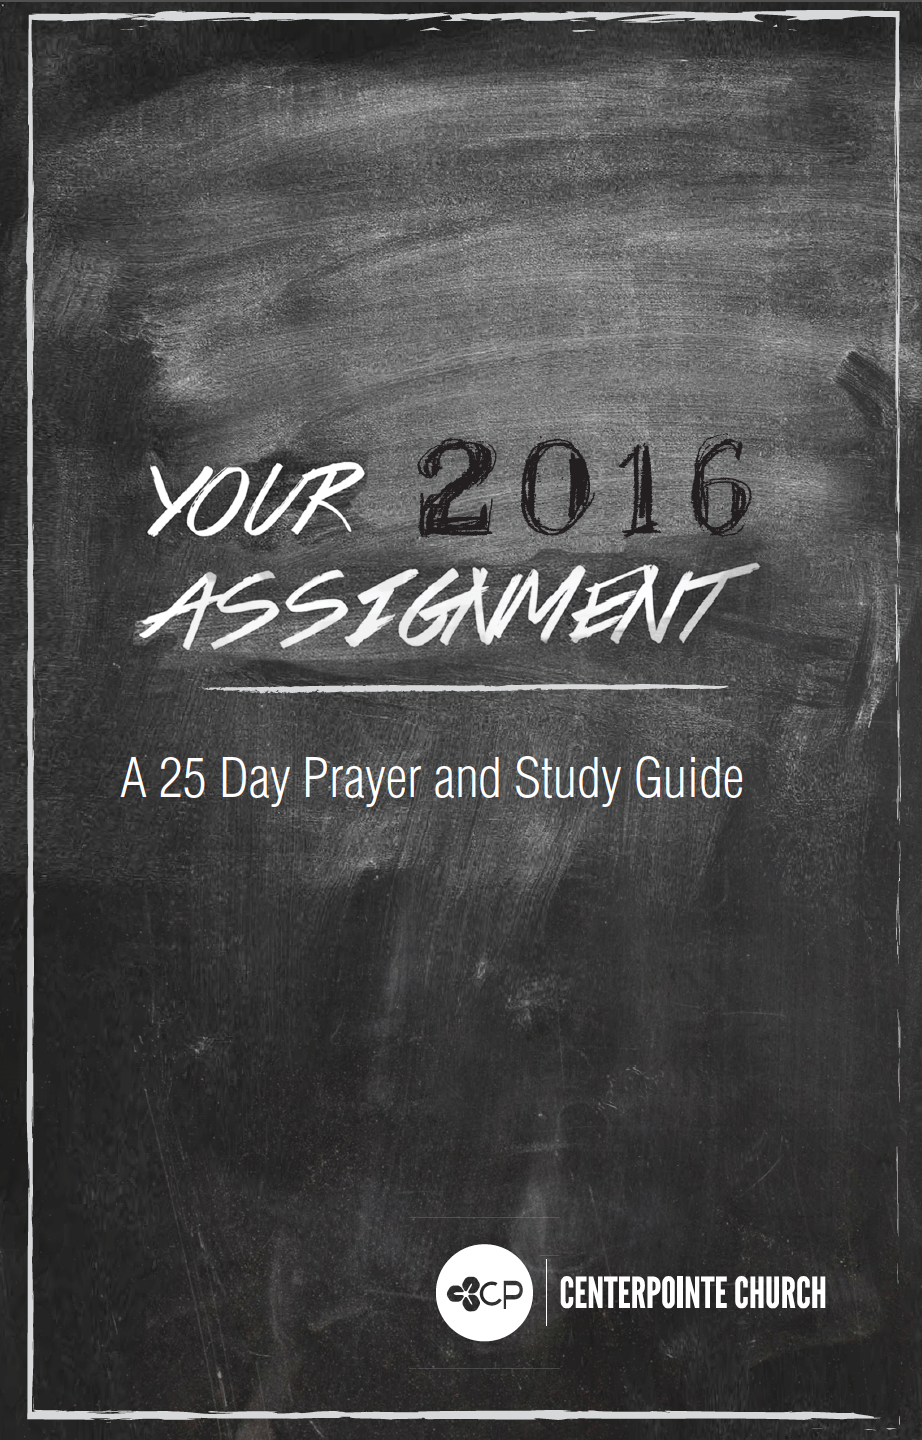 Your assigment (reflections book)